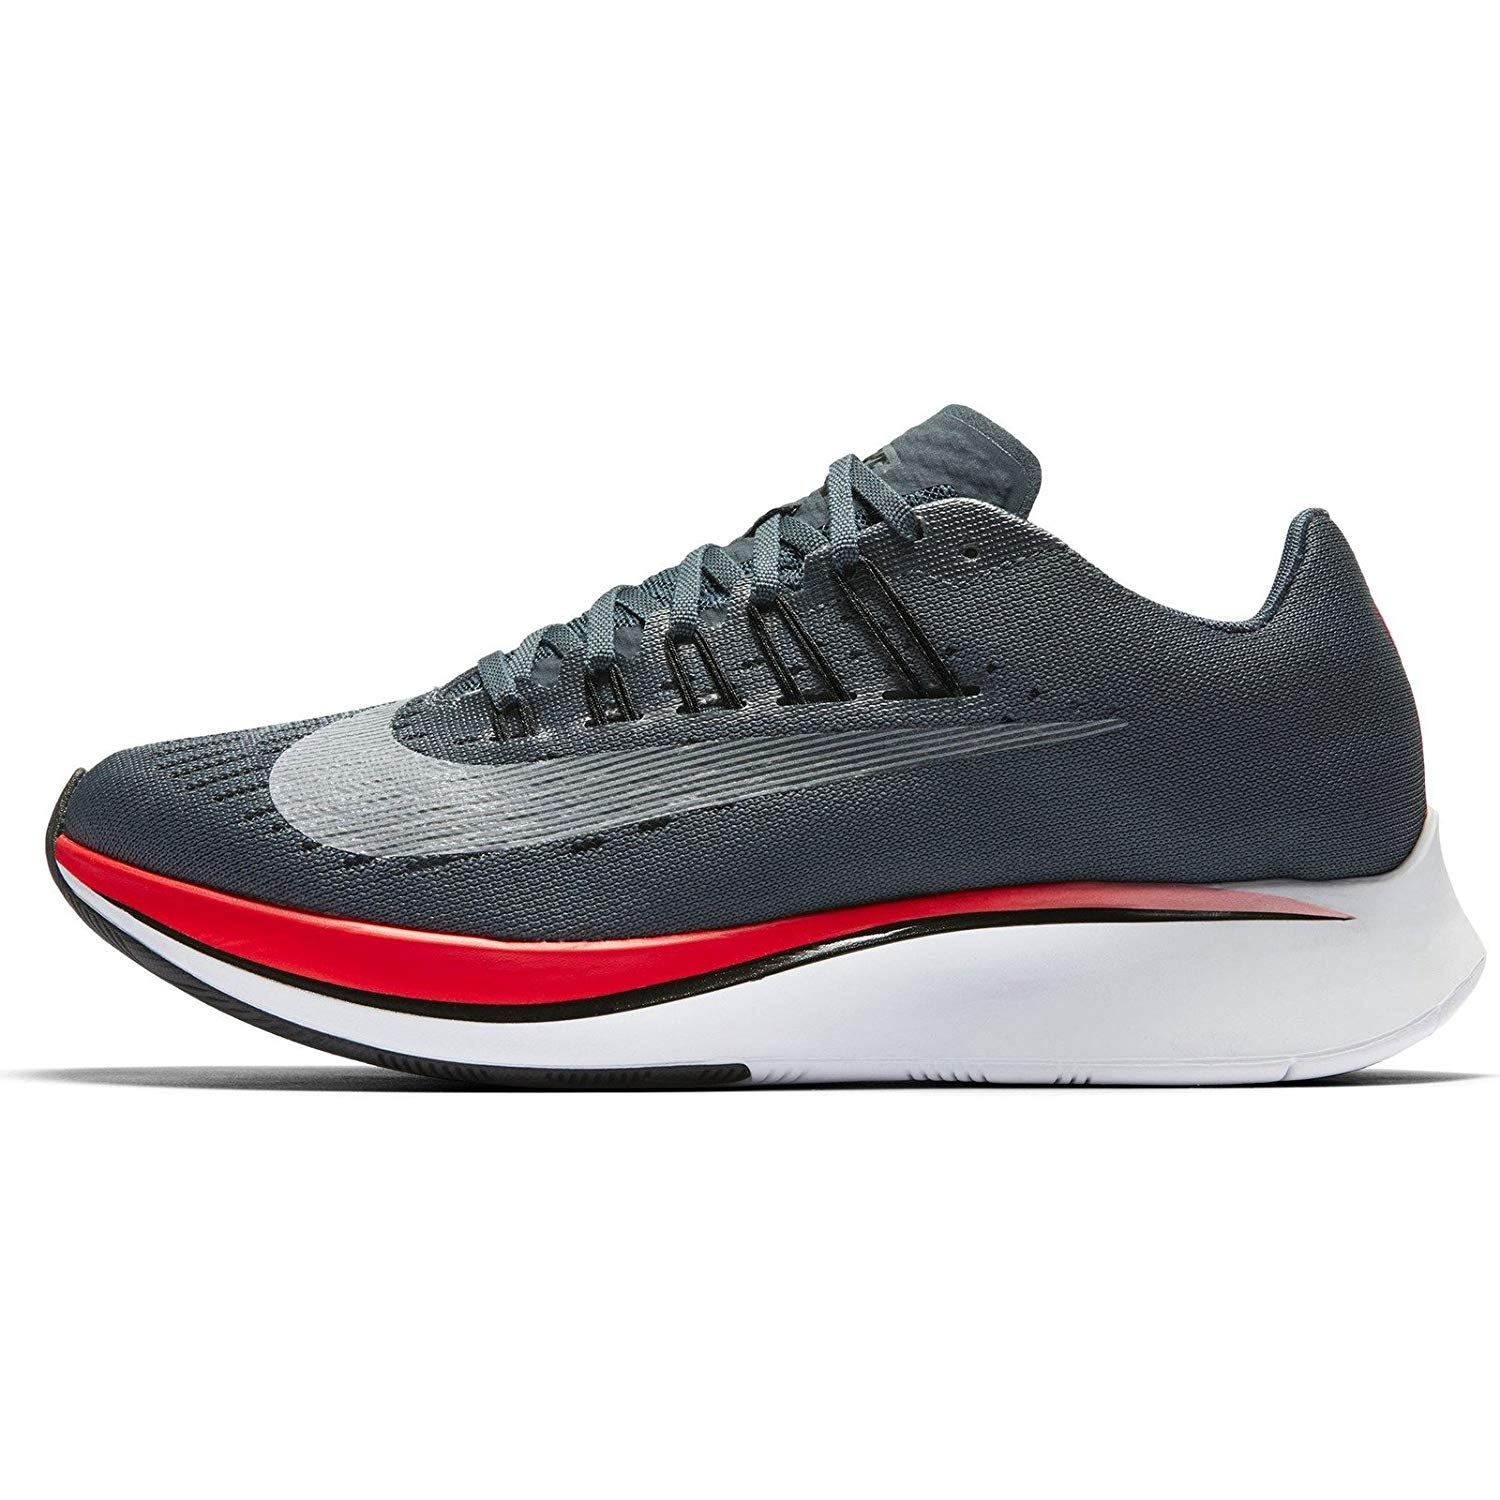 78e1eb08b946c Shop Nike Women s WMNS Zoom Fly Trainers Purple - 8.5 - Free Shipping Today  - Overstock.com - 27115512